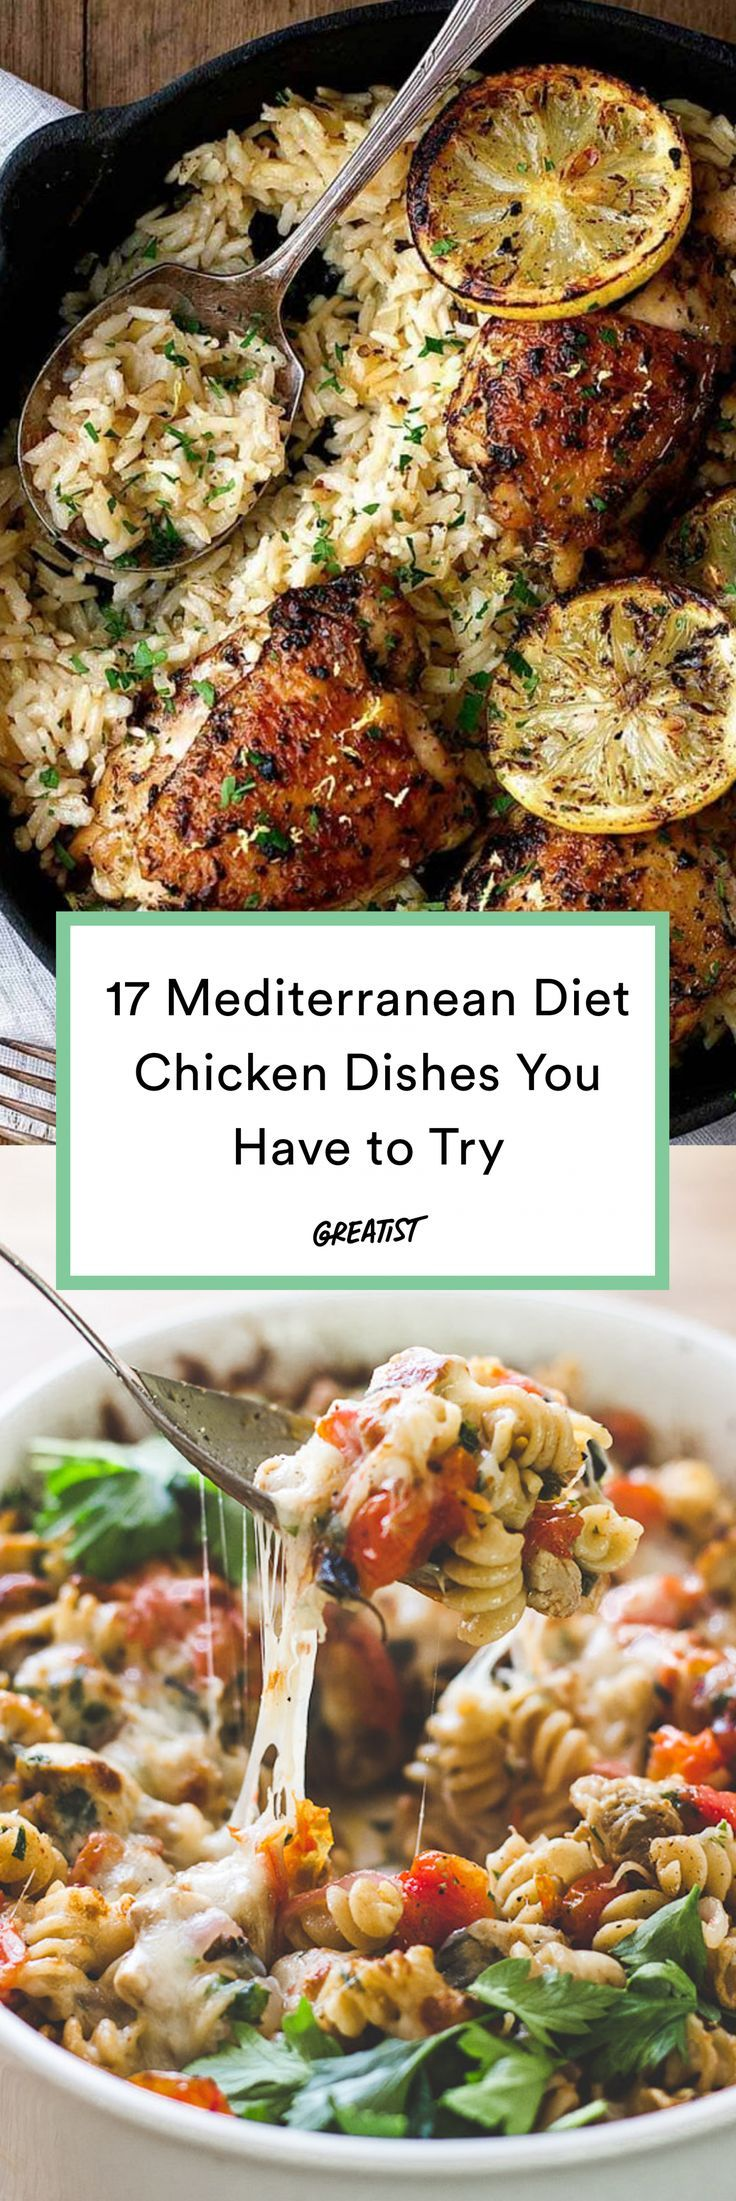 17 Mediterranean Diet Chicken Recipes to Make for Weeknight Dinners images